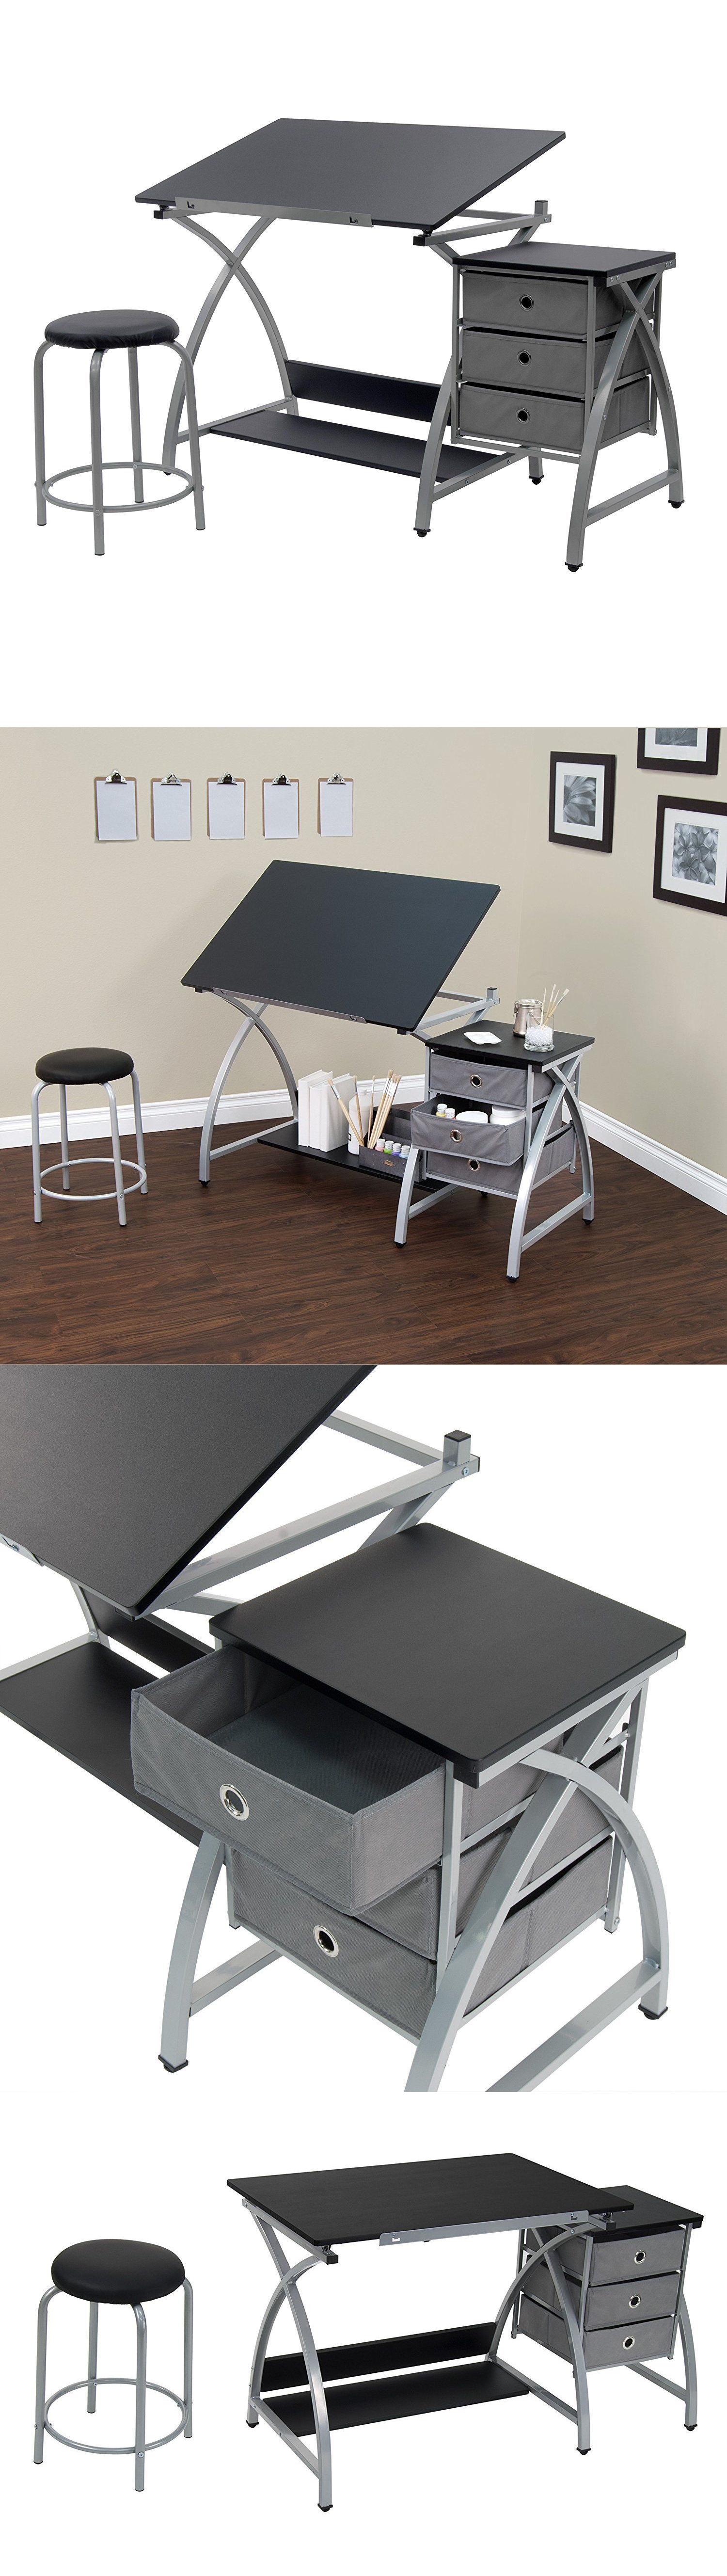 Drawing Boards And Tables 183083: Adjustable Drafting Table Top Artist Stool  3 Storage Shelves Black